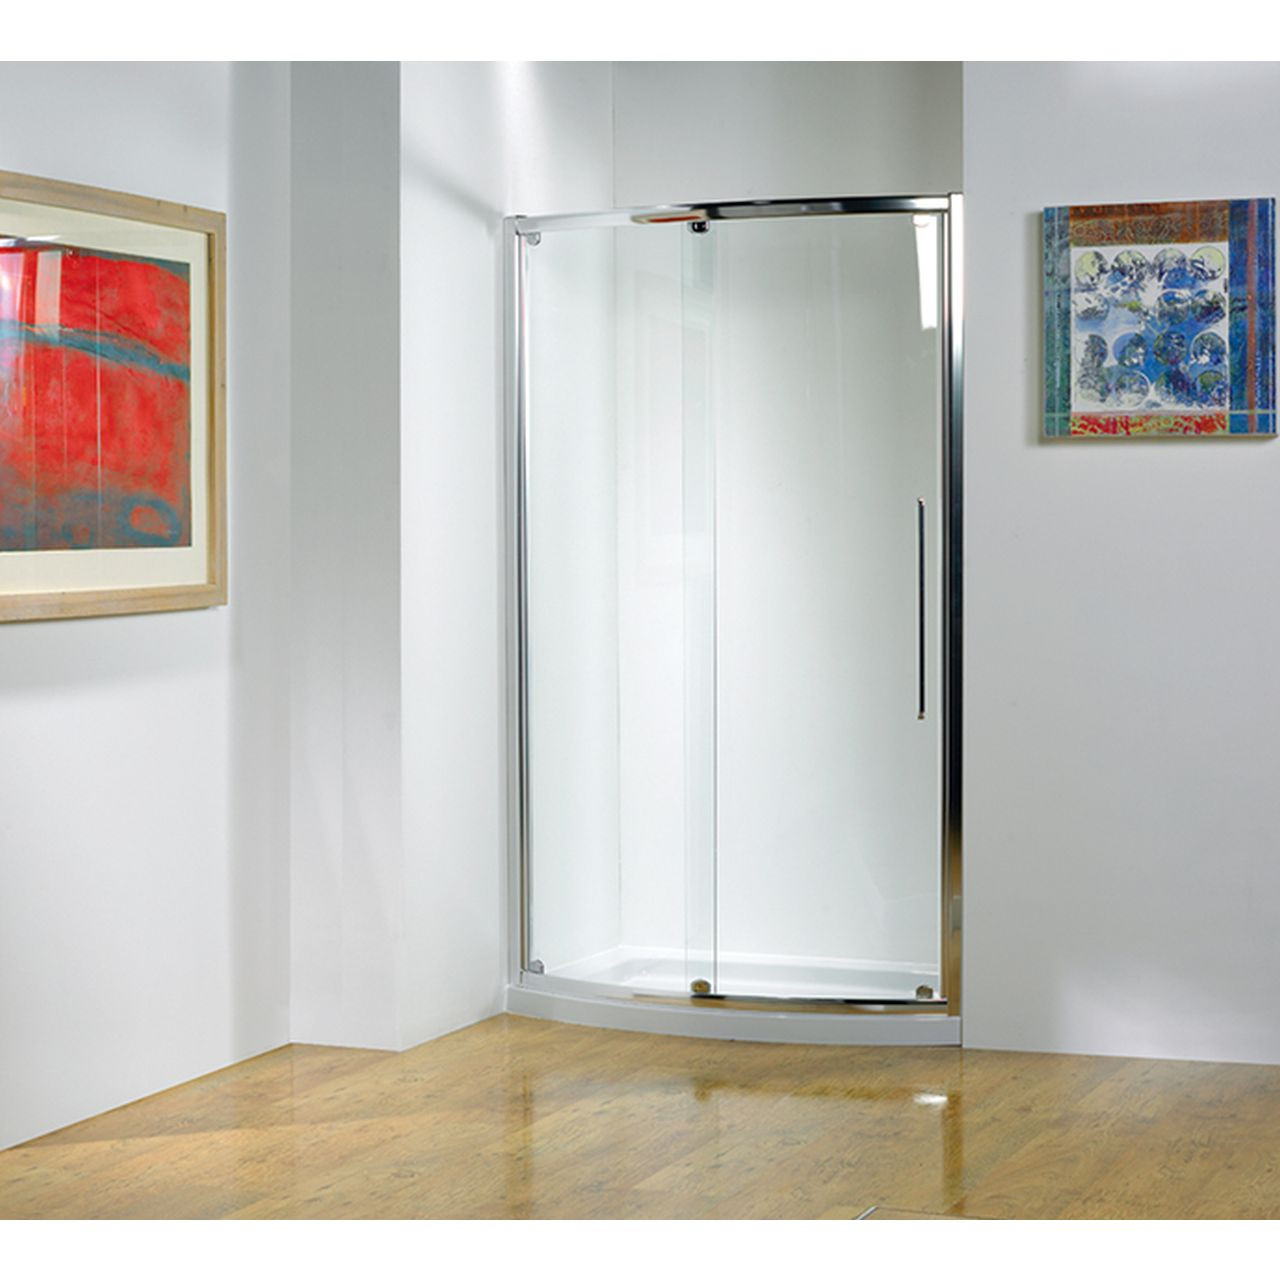 Kudos Original 1700mm Bowed Sliding Shower Door - 3BOWS170S